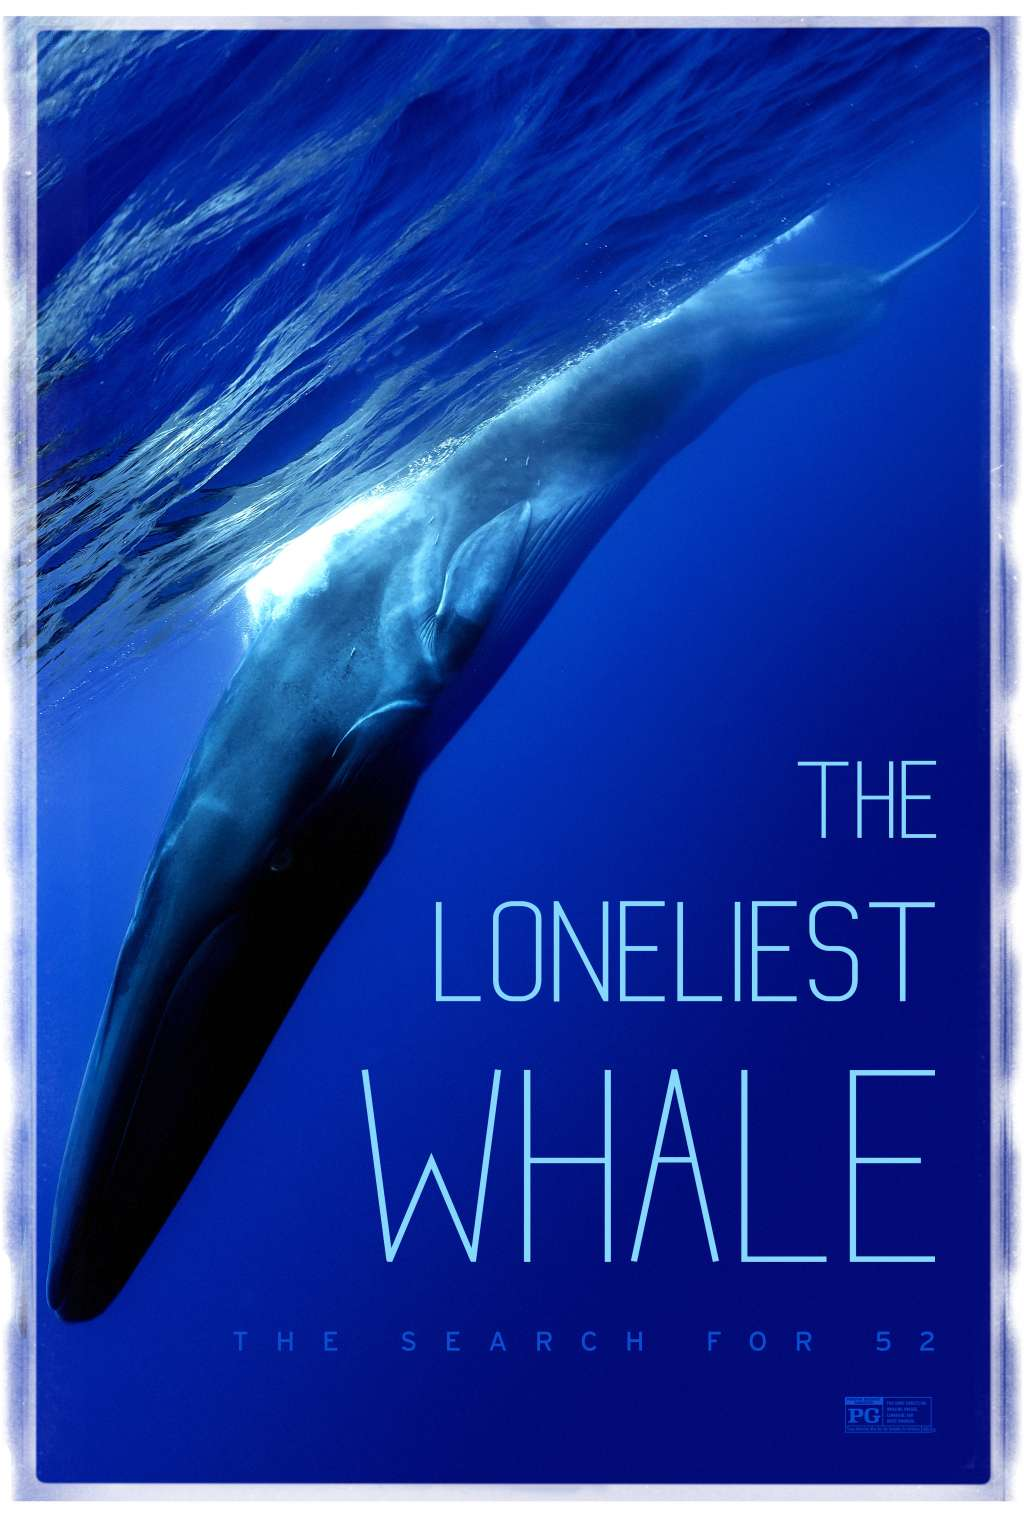 The Loneliest Whale: The Search for 52 kapak